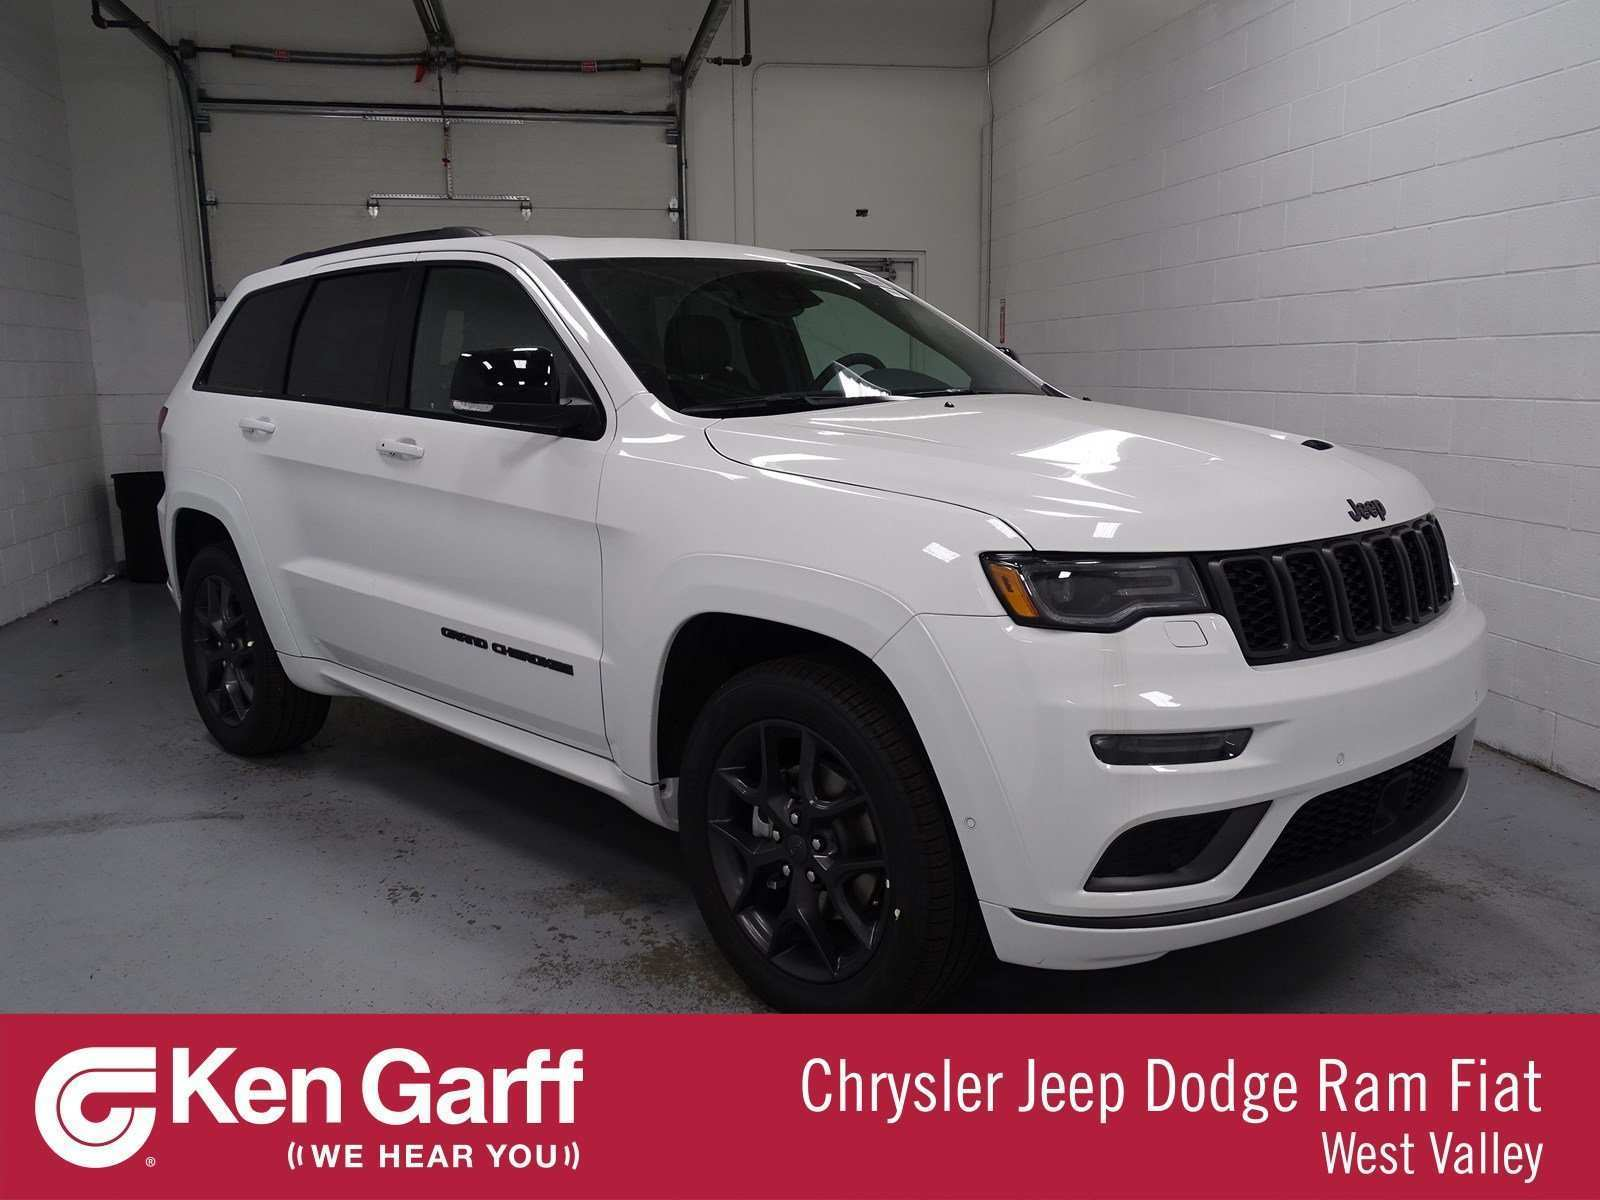 46 New Best 2019 Jeep Grand Cherokee Limited X New Interior History for Best 2019 Jeep Grand Cherokee Limited X New Interior